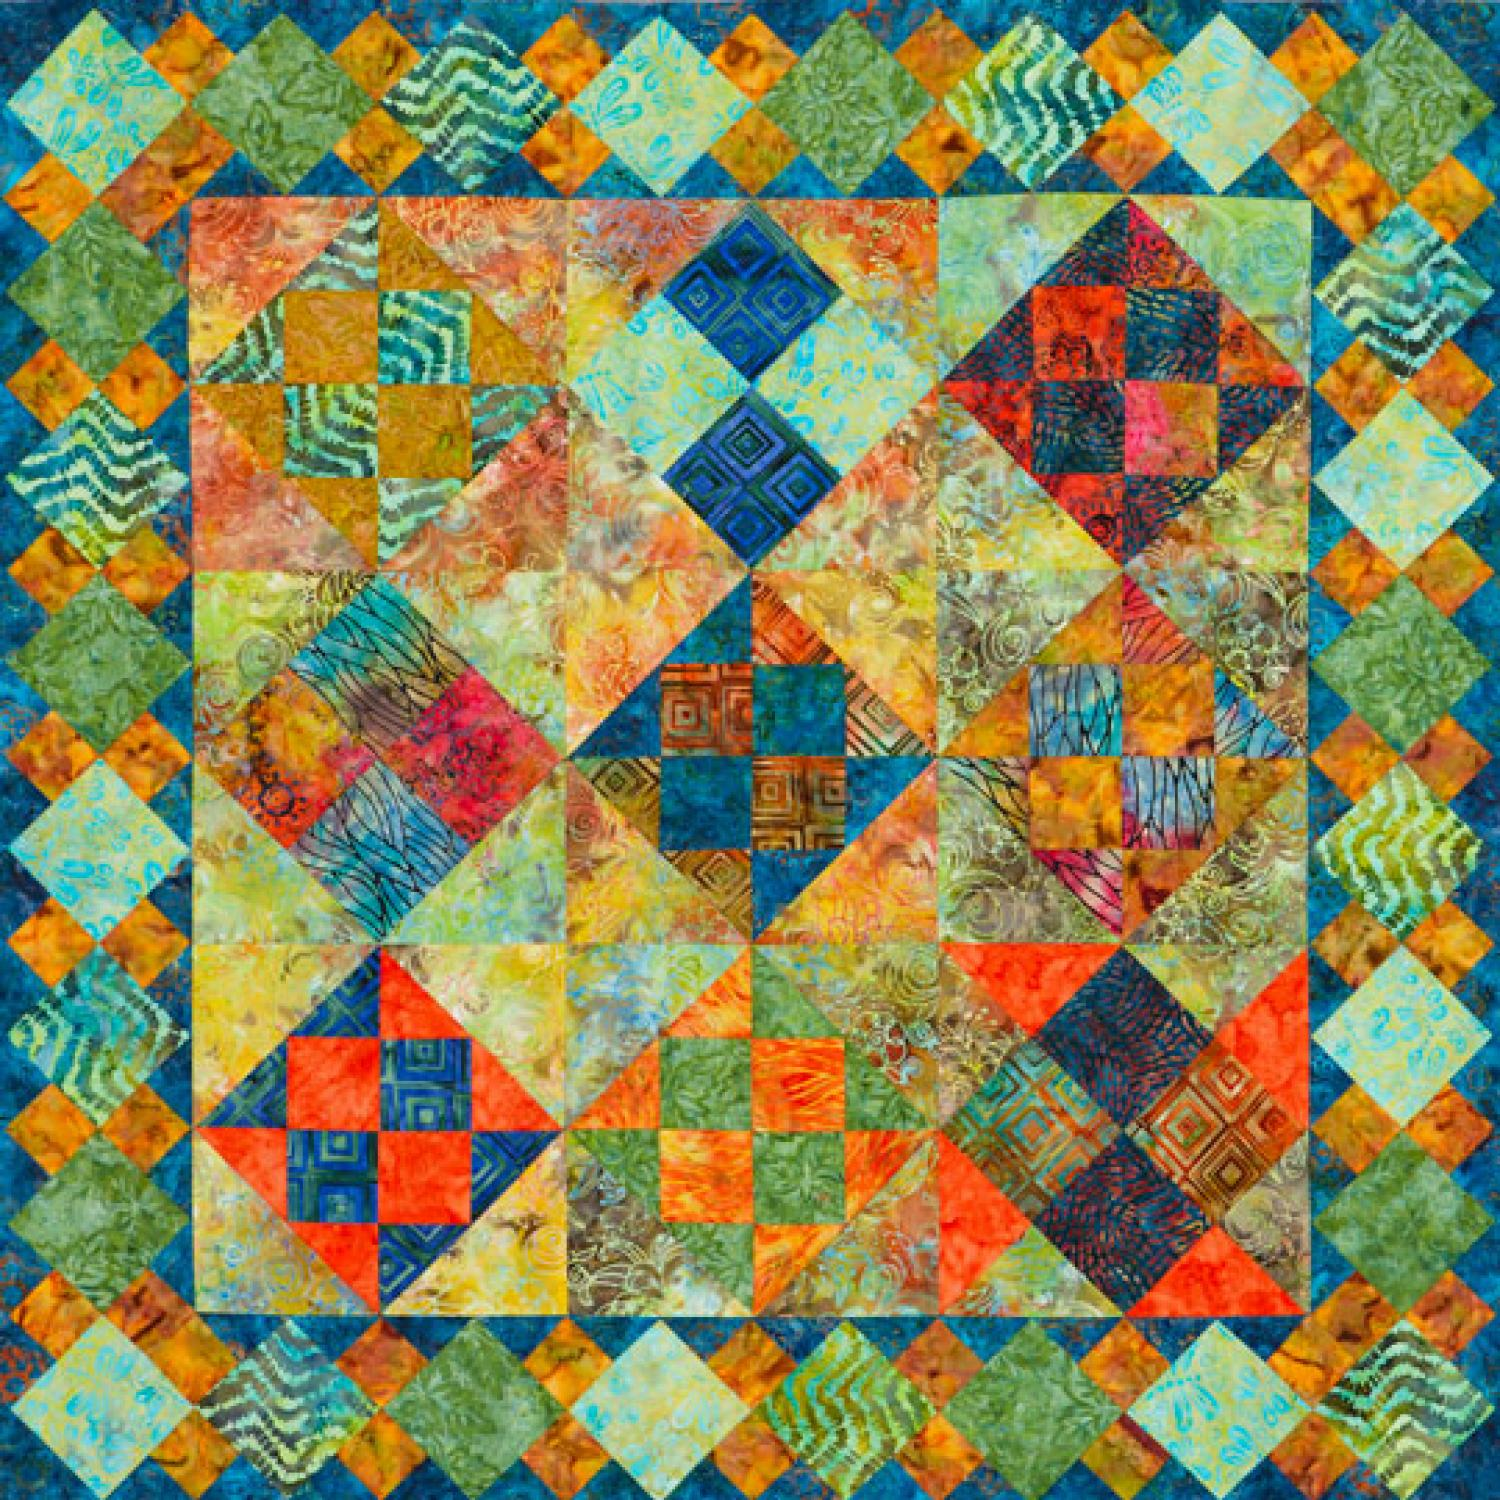 Tropical Patches Wall Quilt AllPeopleQuiltcom